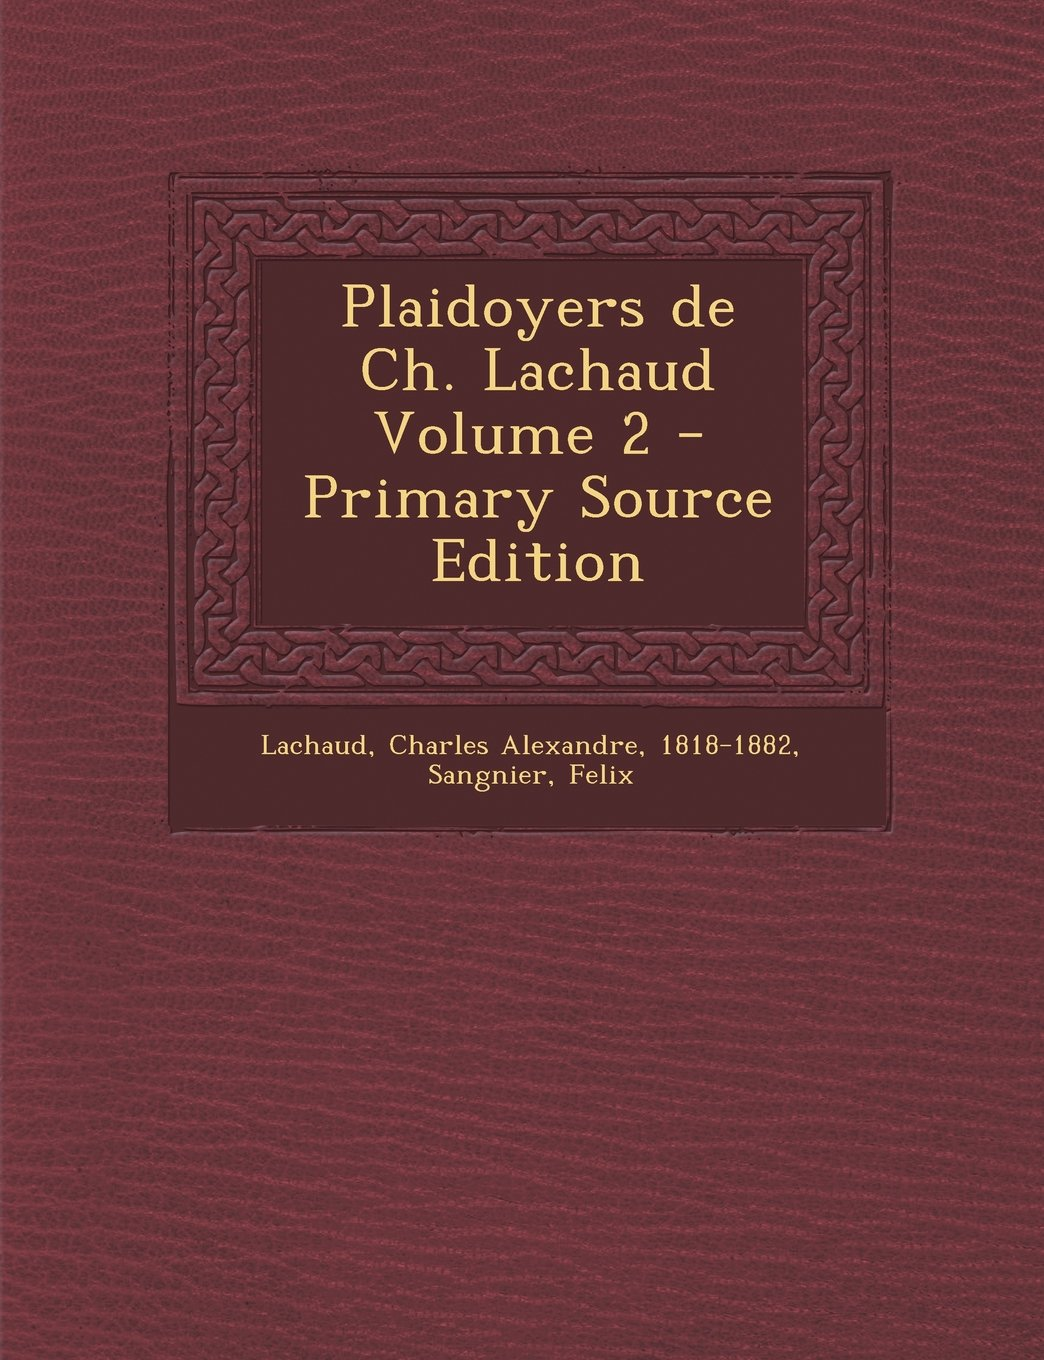 Download Plaidoyers de Ch. Lachaud Volume 2 - Primary Source Edition (French Edition) ebook